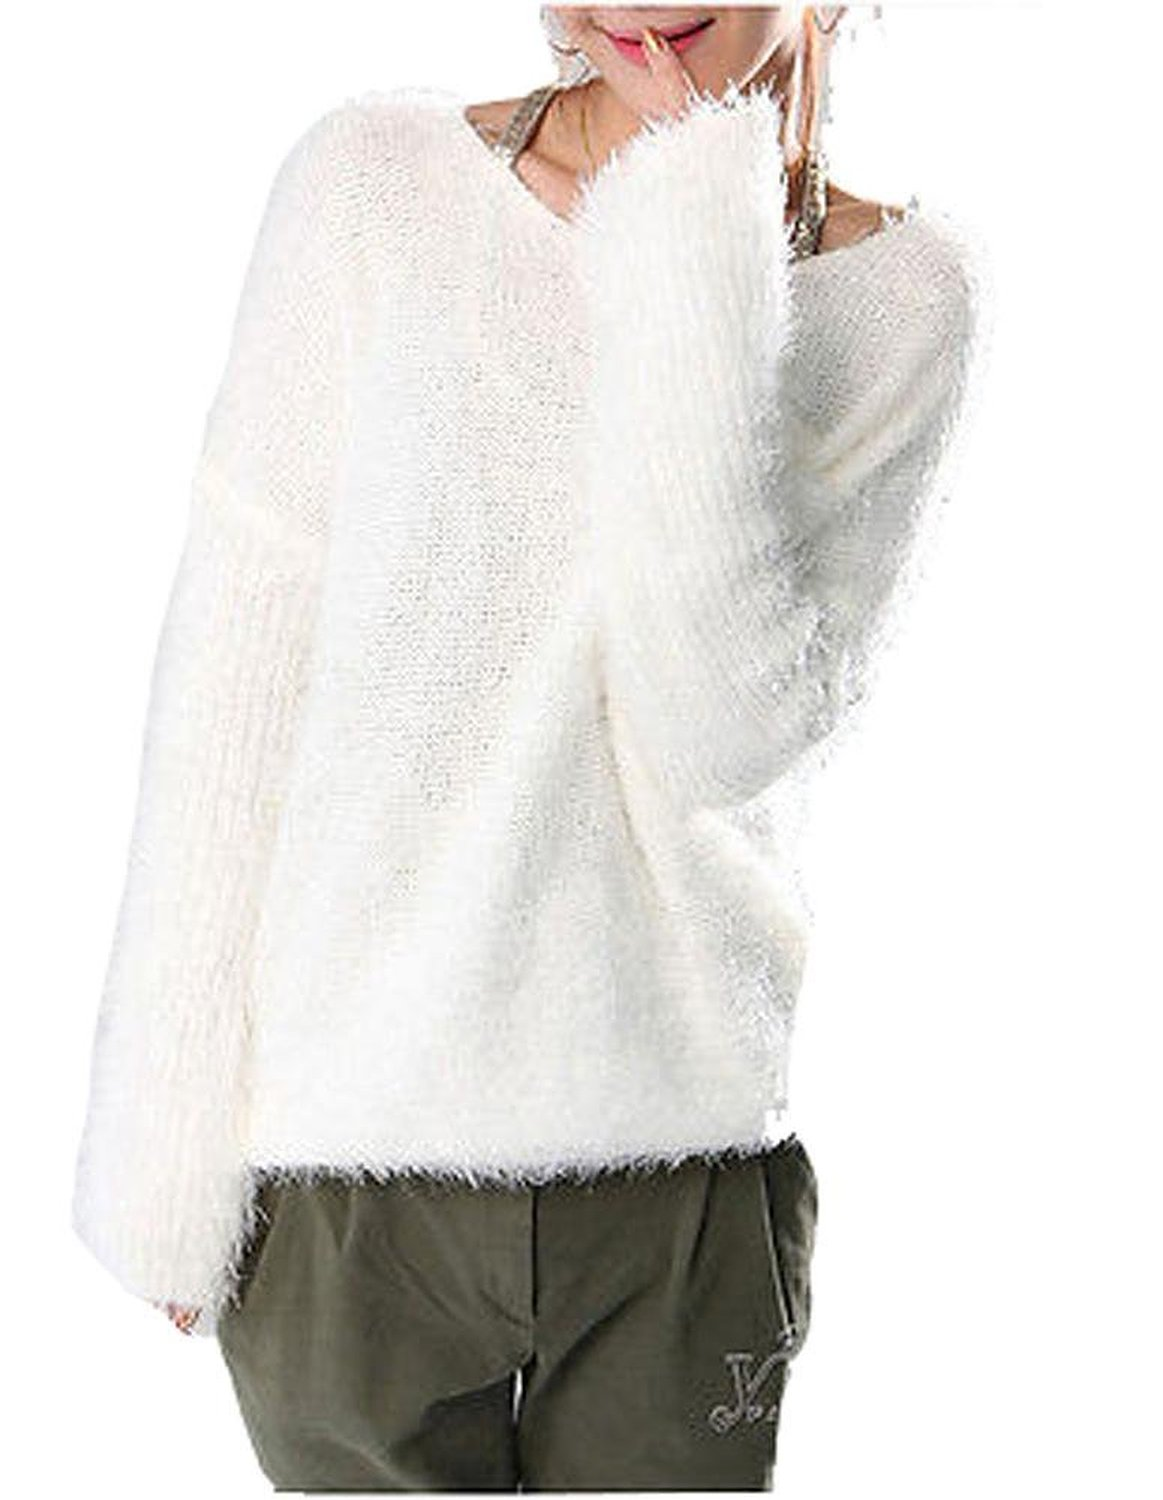 Ladies warm thick batwing sleeve fuzzy free sweater at amazon women's clothing store: